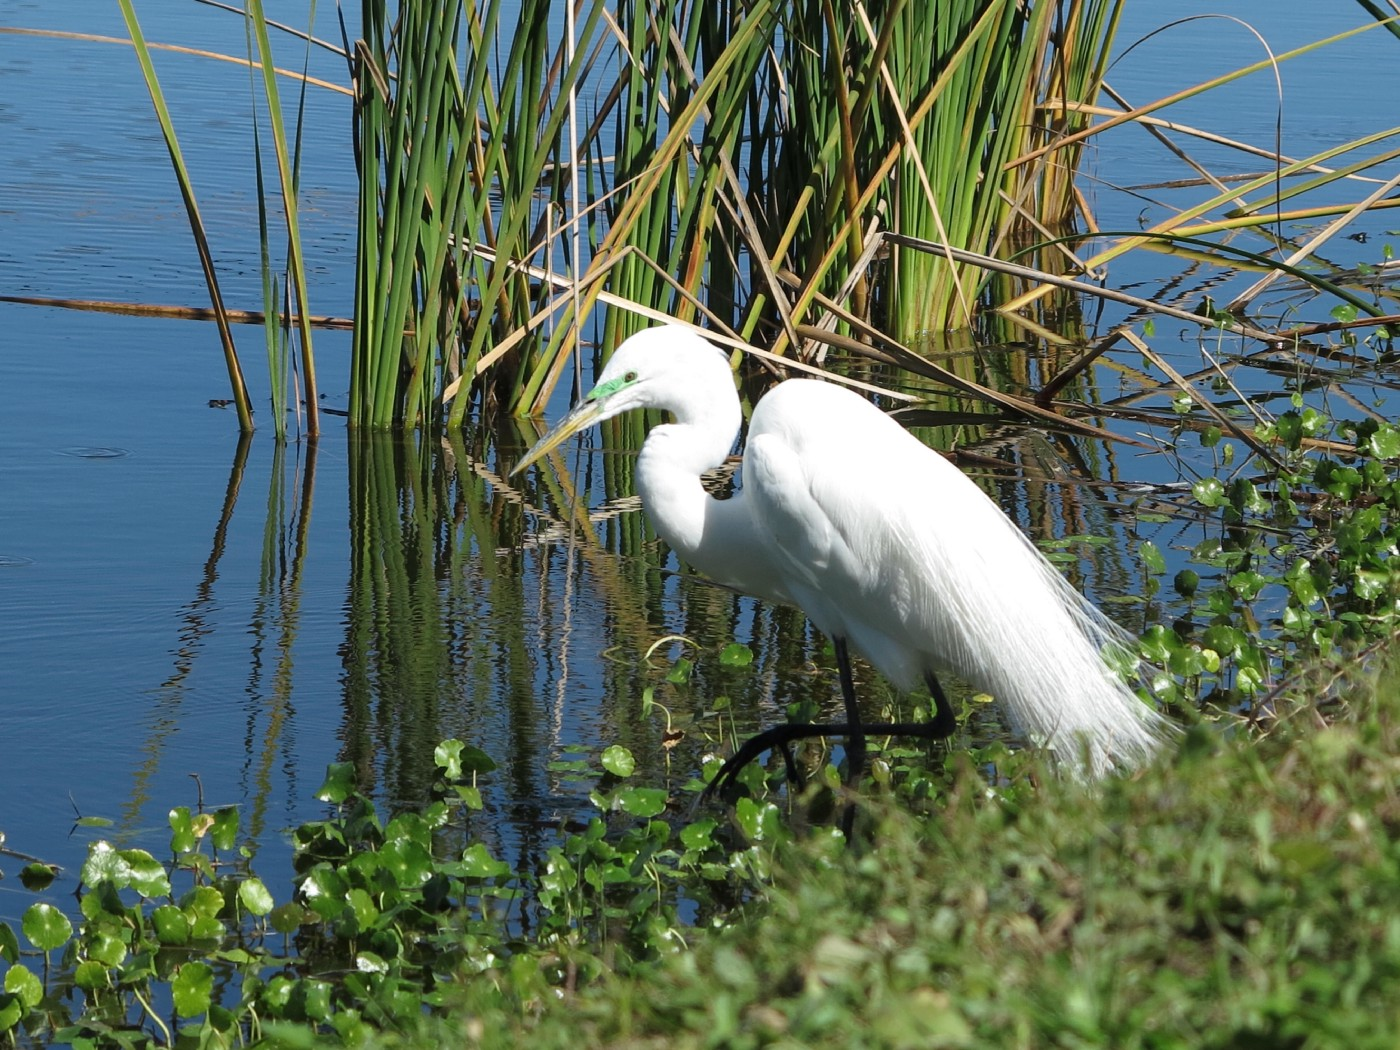 Close up photo of a tall white bird on the edge of a pond